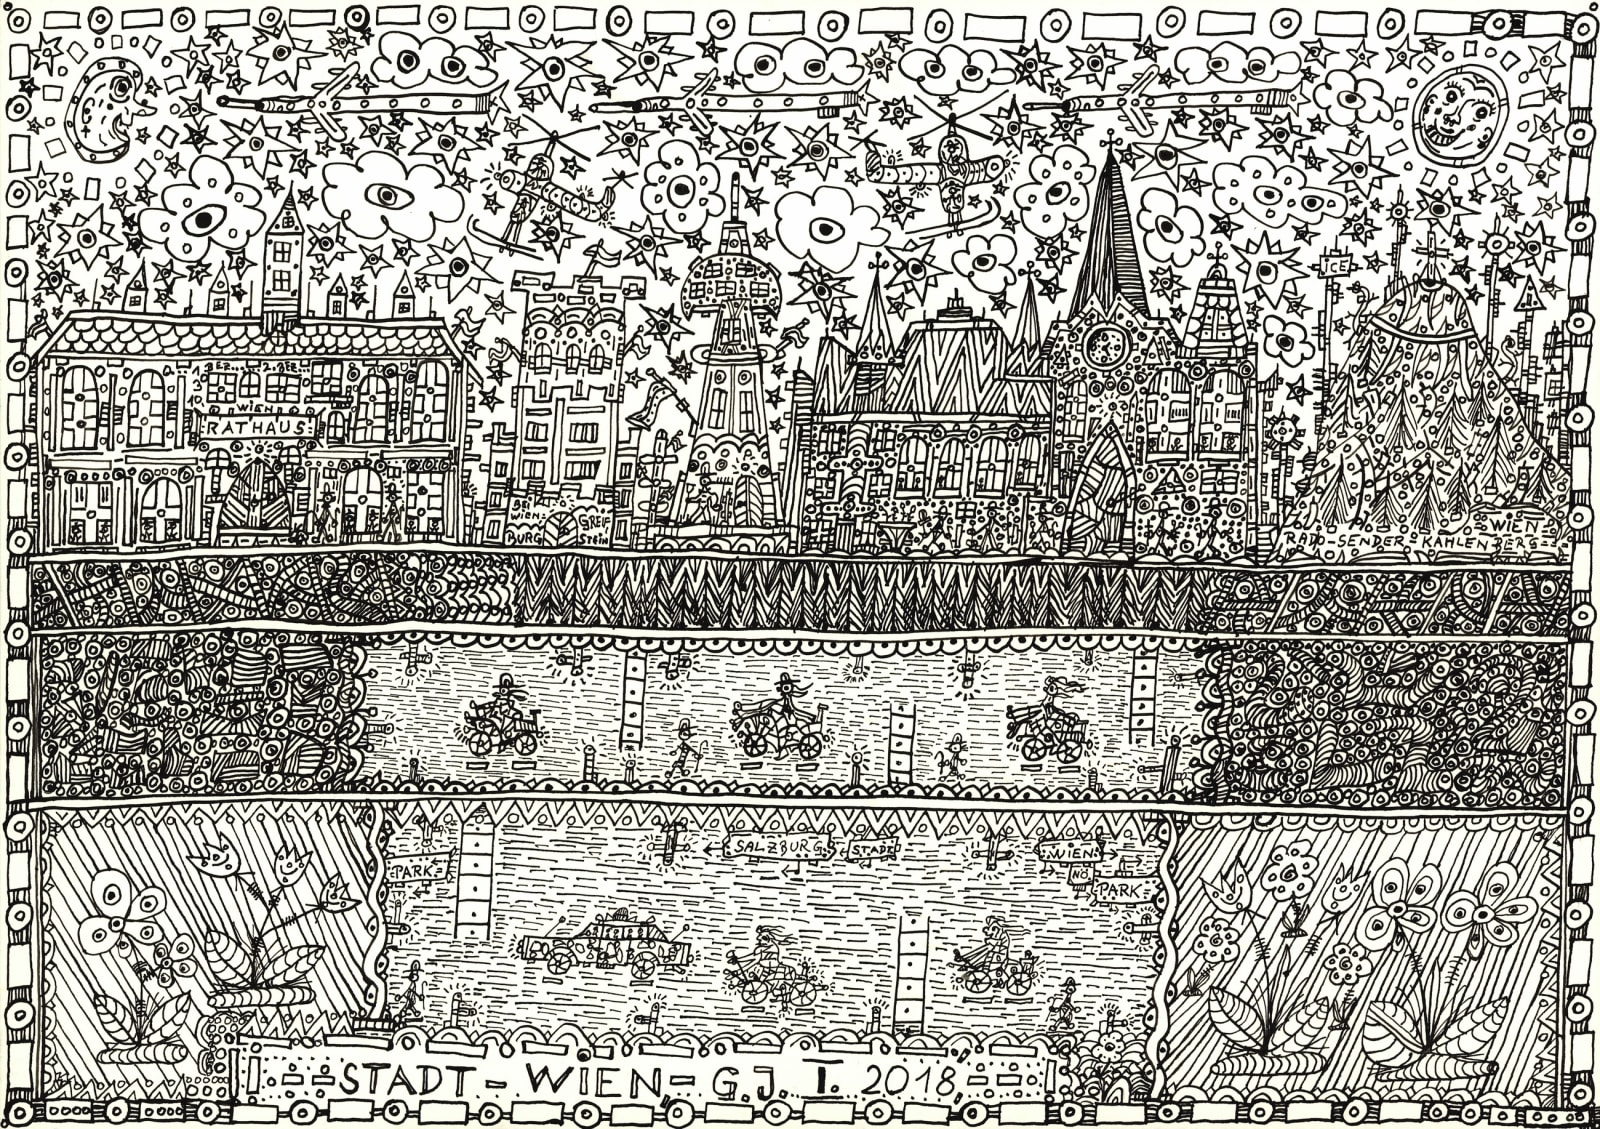 City-Vienna, 2018 India ink on paper 11 5/8 x 16 1/2 in. (29.5 x 41.8 cm.) (JGG 16) SOLD